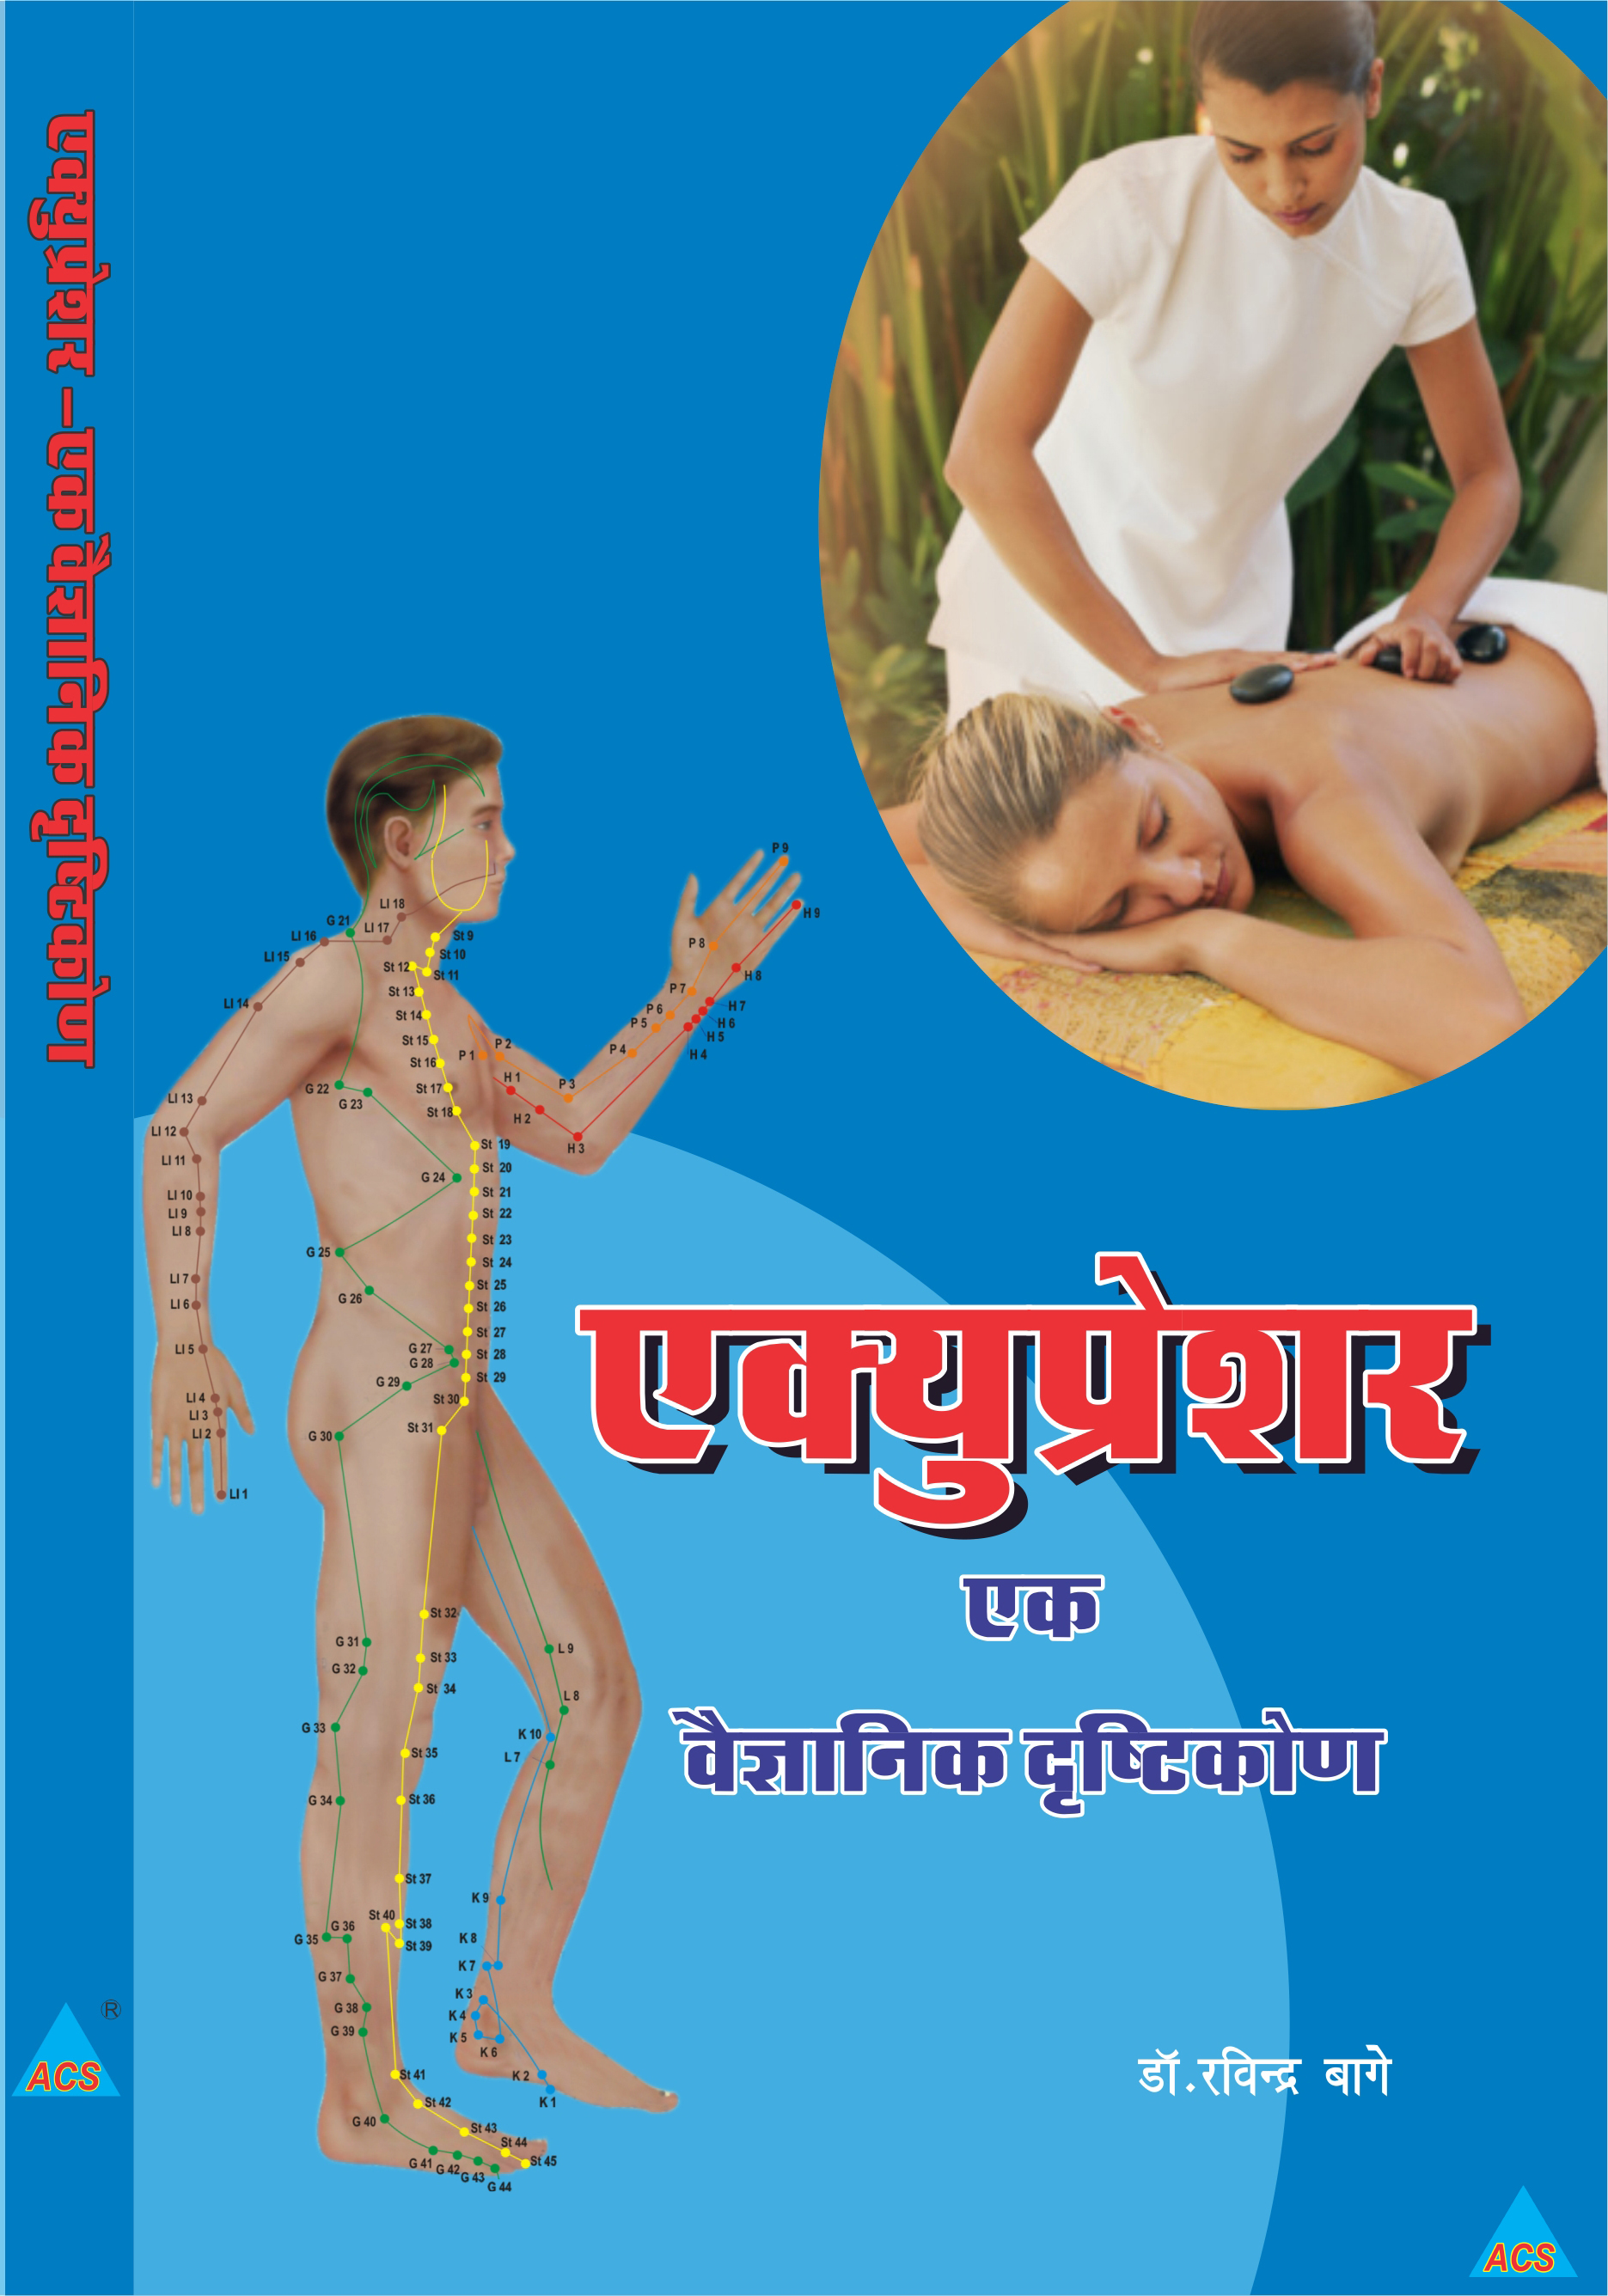 Acupressure - Smt. Lata Shree & Bage - Hindi  - 571